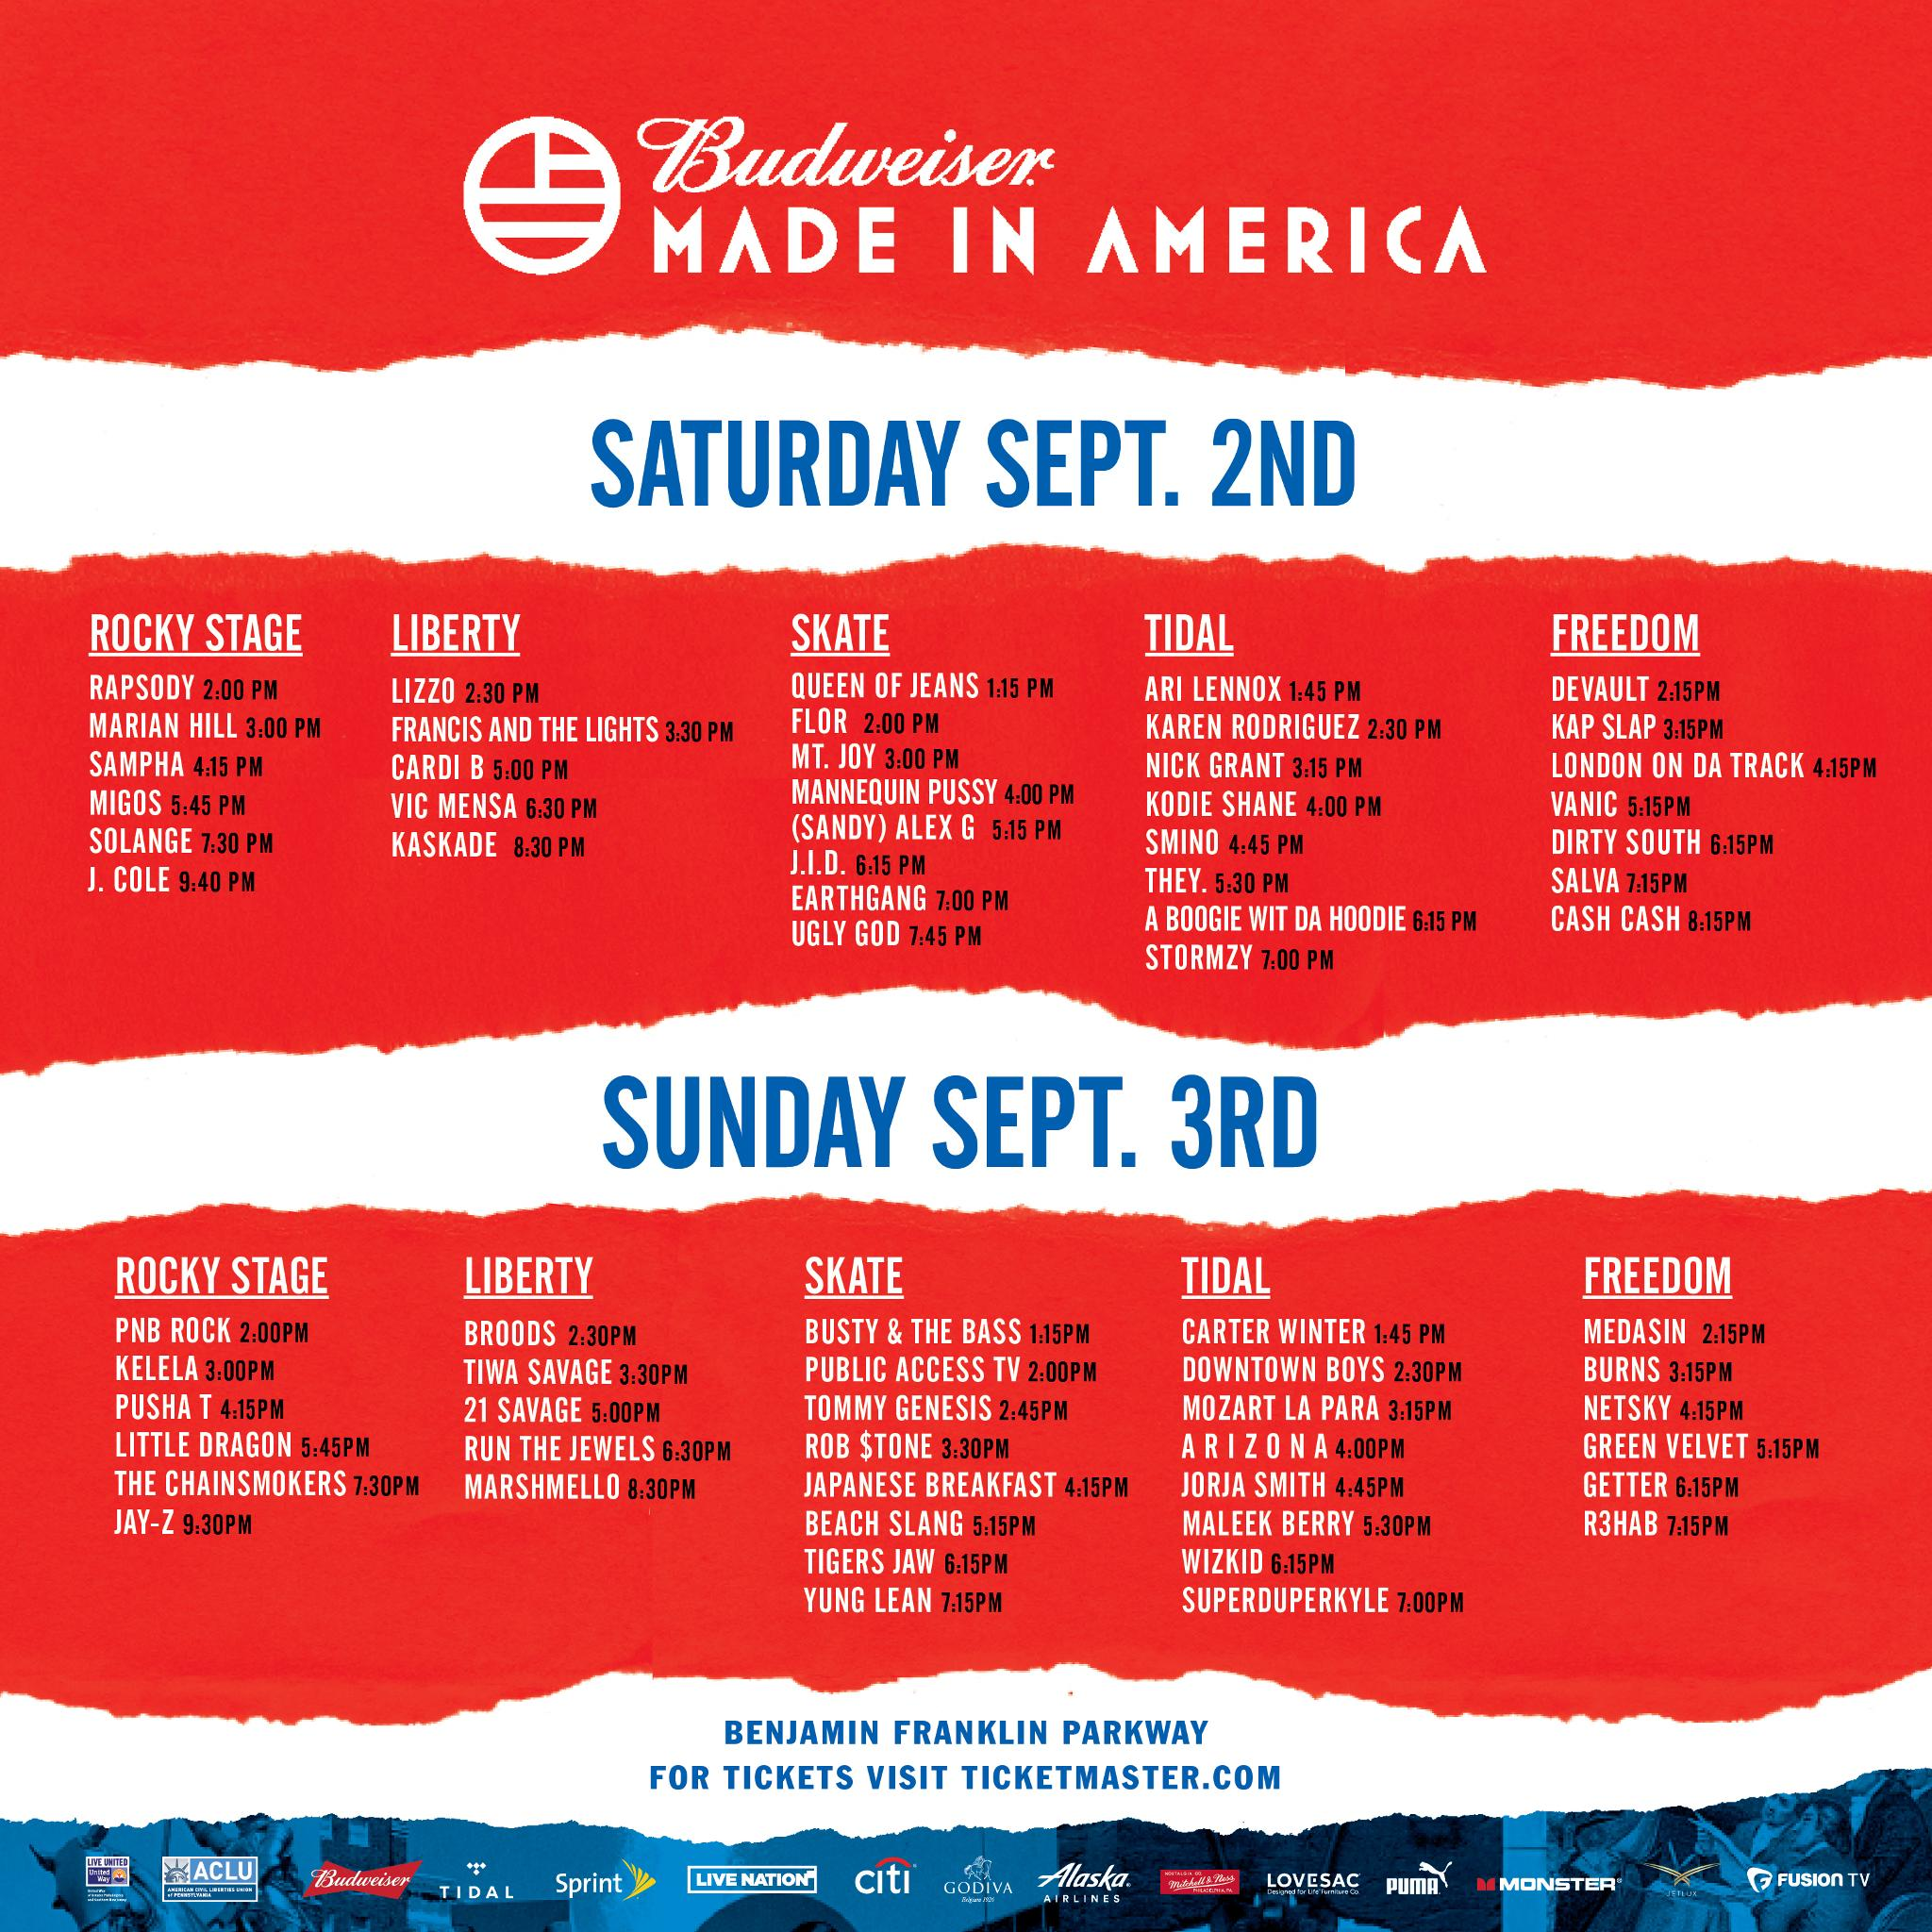 The ´Made In America´ schedule.